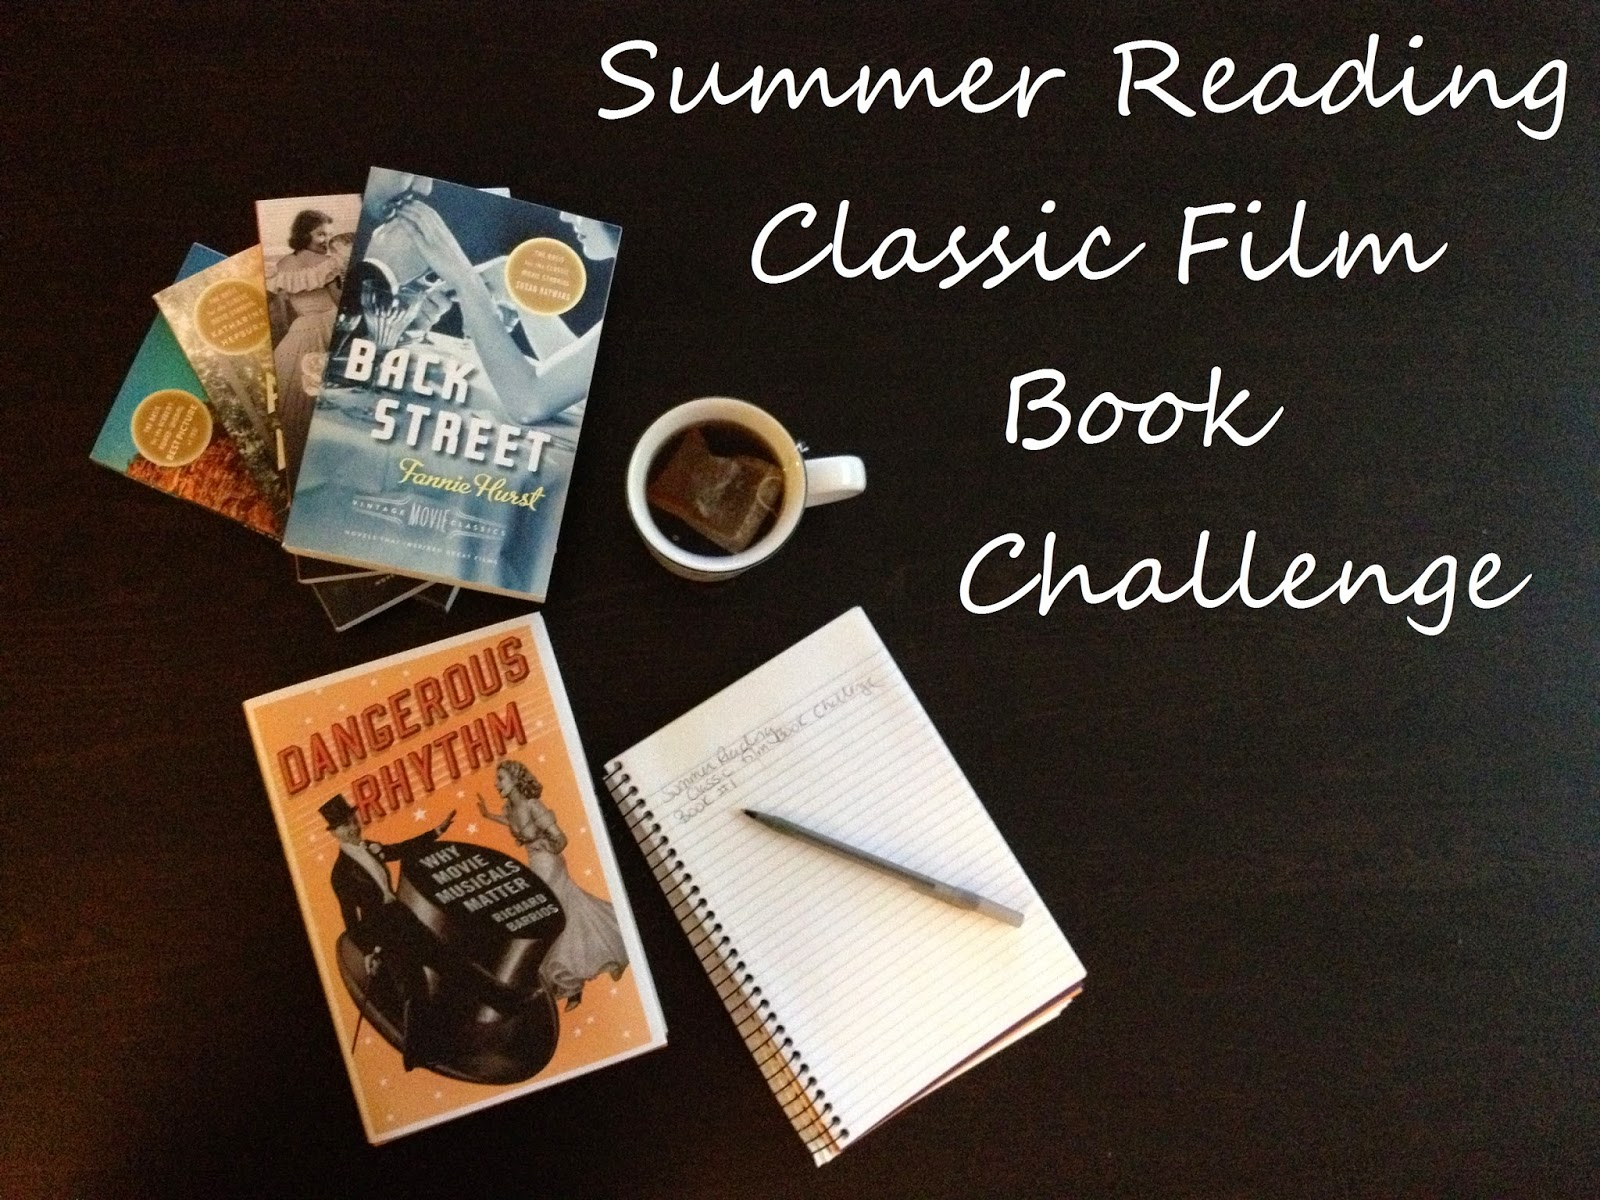 Grab button for the 2014 Summer Reading Classic Film Book Challenge